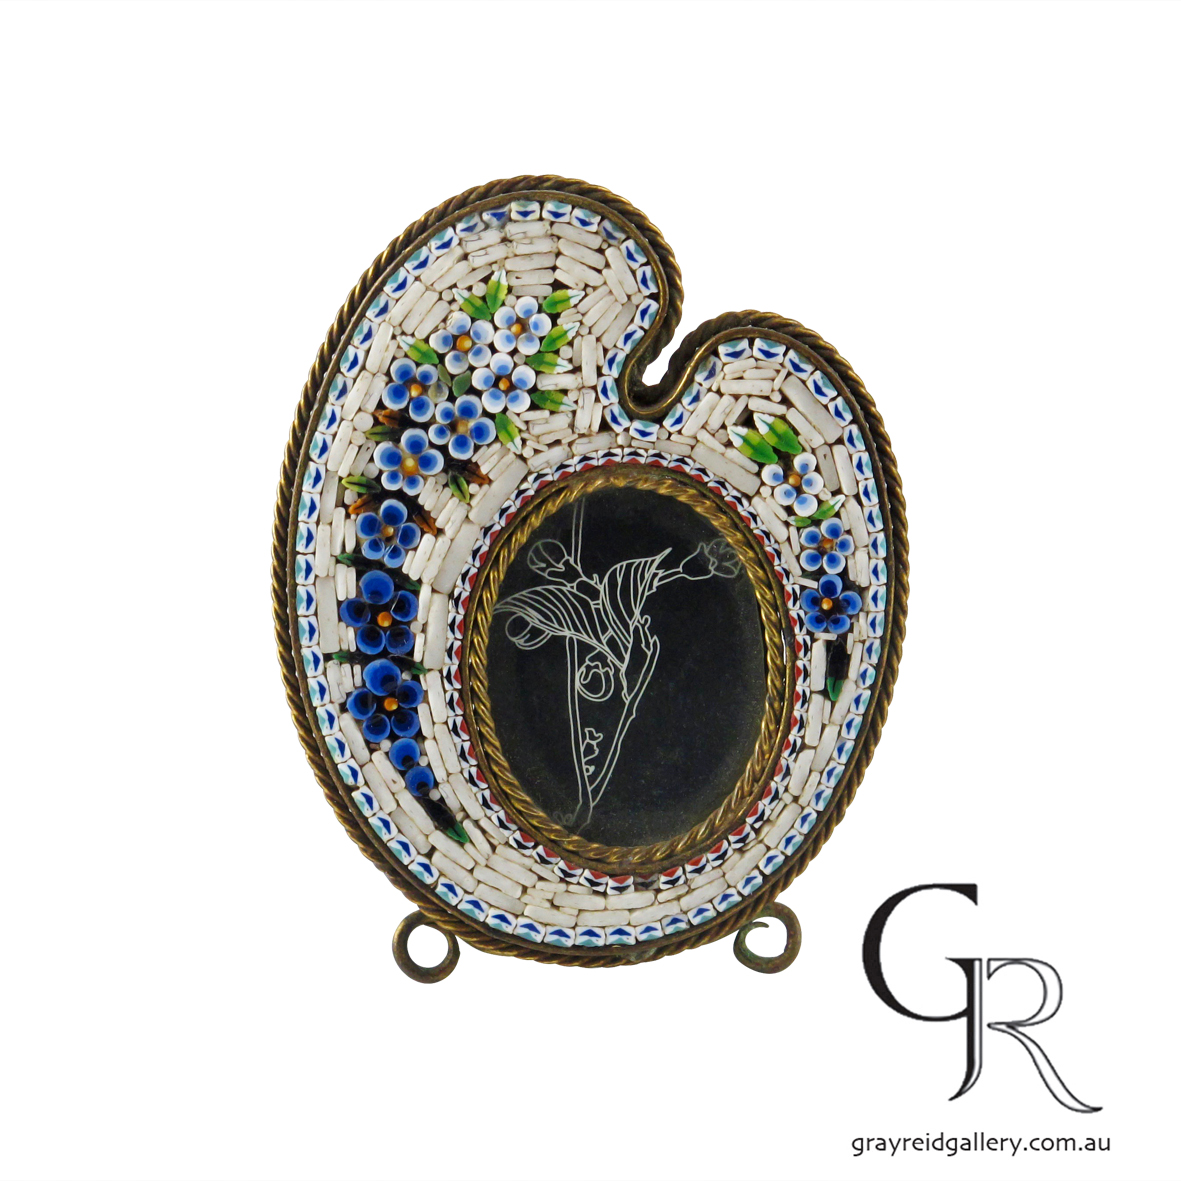 antiques and collectables melbourne micro mosaic picture frame Gray Reid Gallery 11.jpg